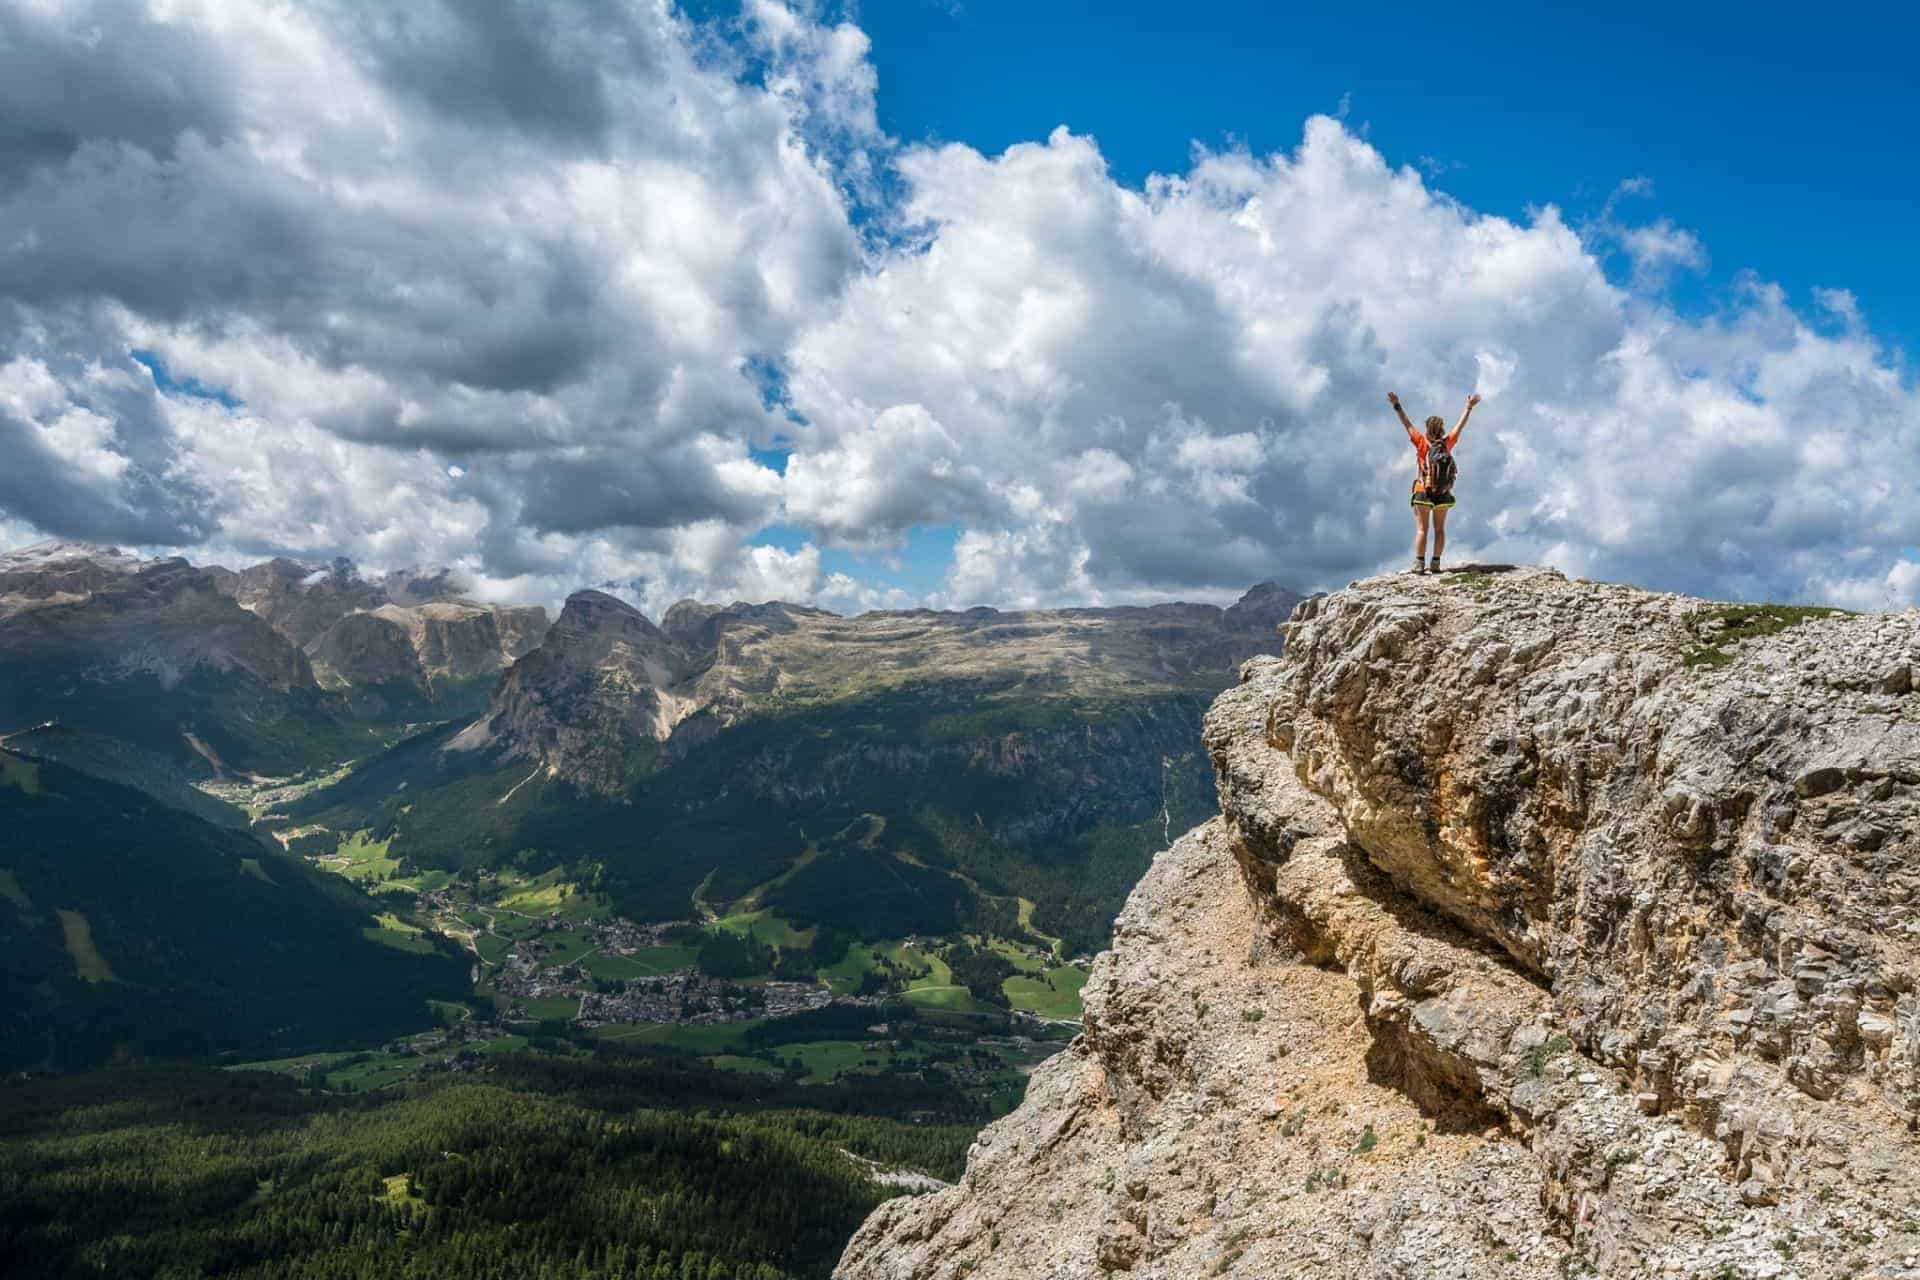 Questions to Inspire Bold Goal-Setting